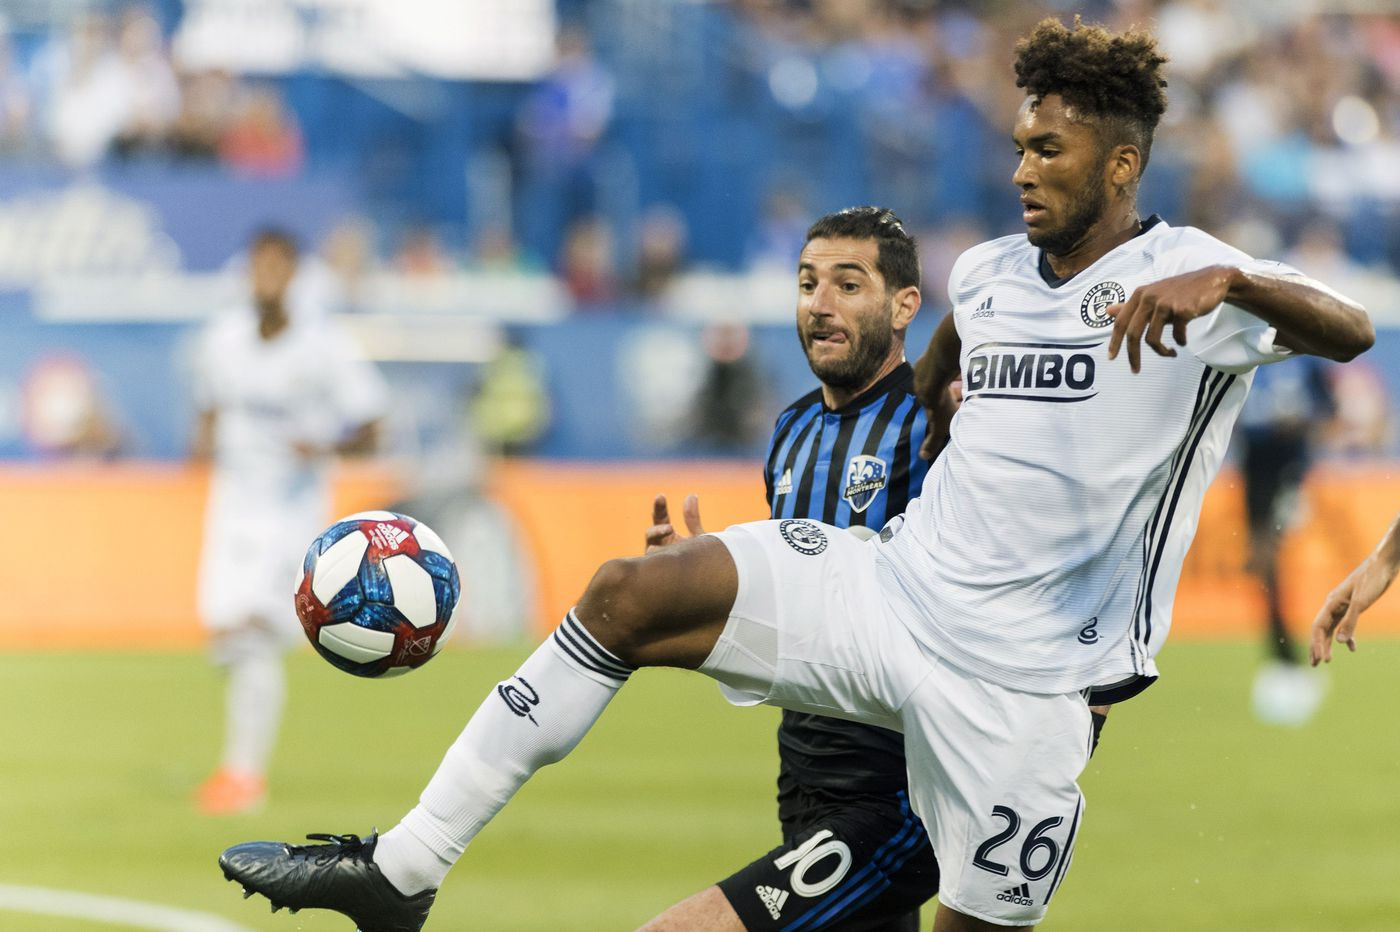 Union's Auston Trusty, Mark McKenzie still have upside despite rough seasons